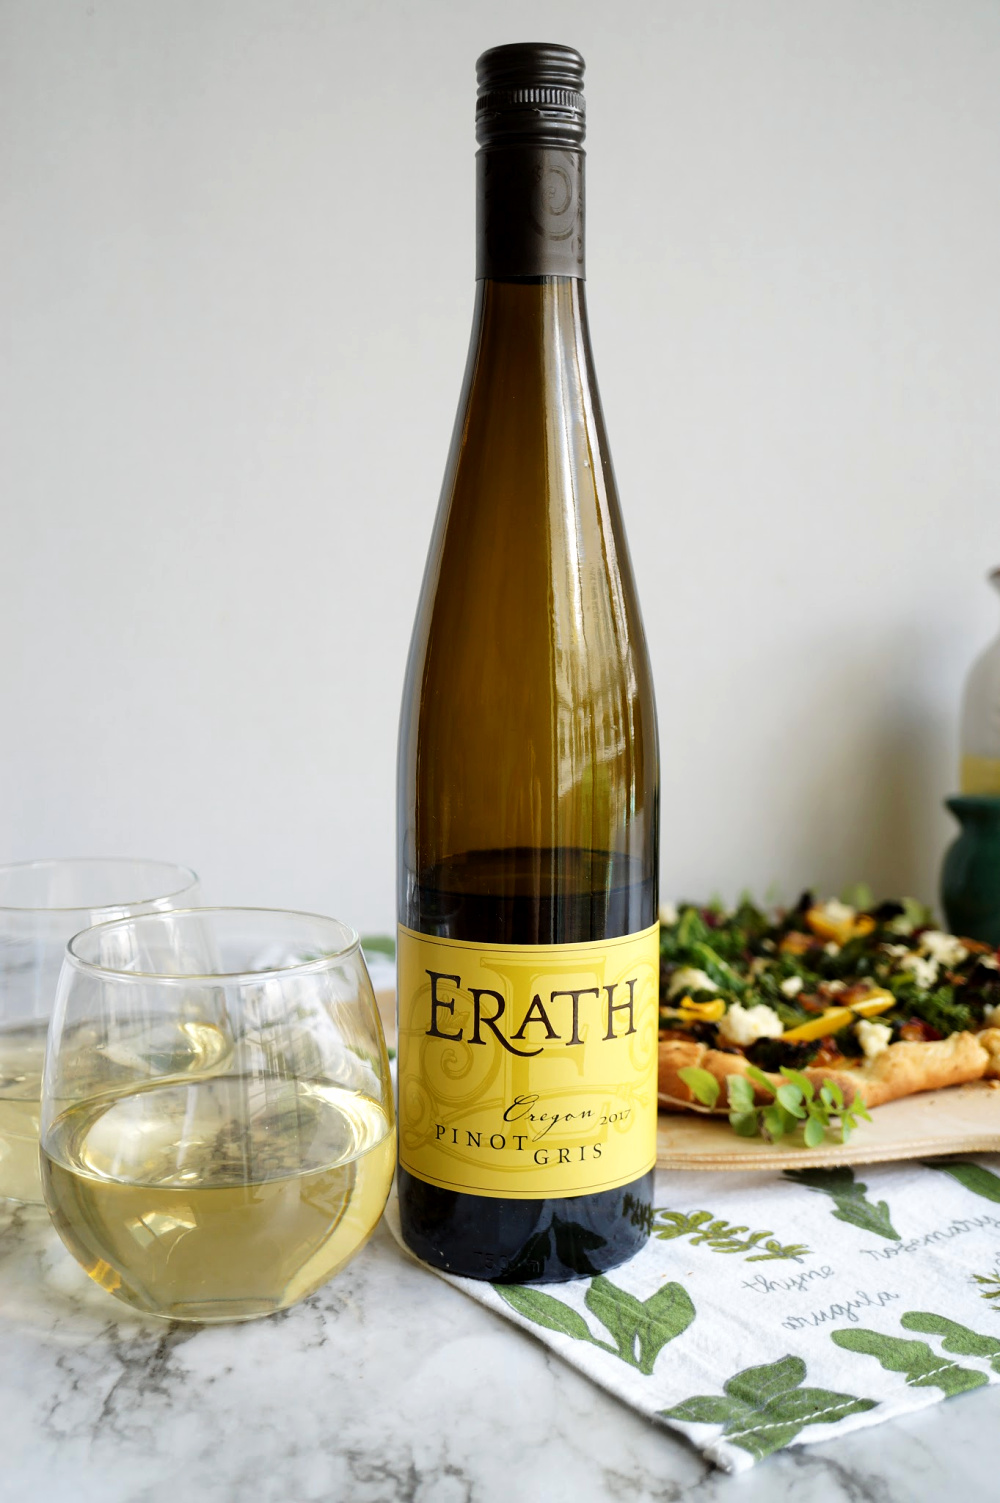 Erath wine bottle with pizza